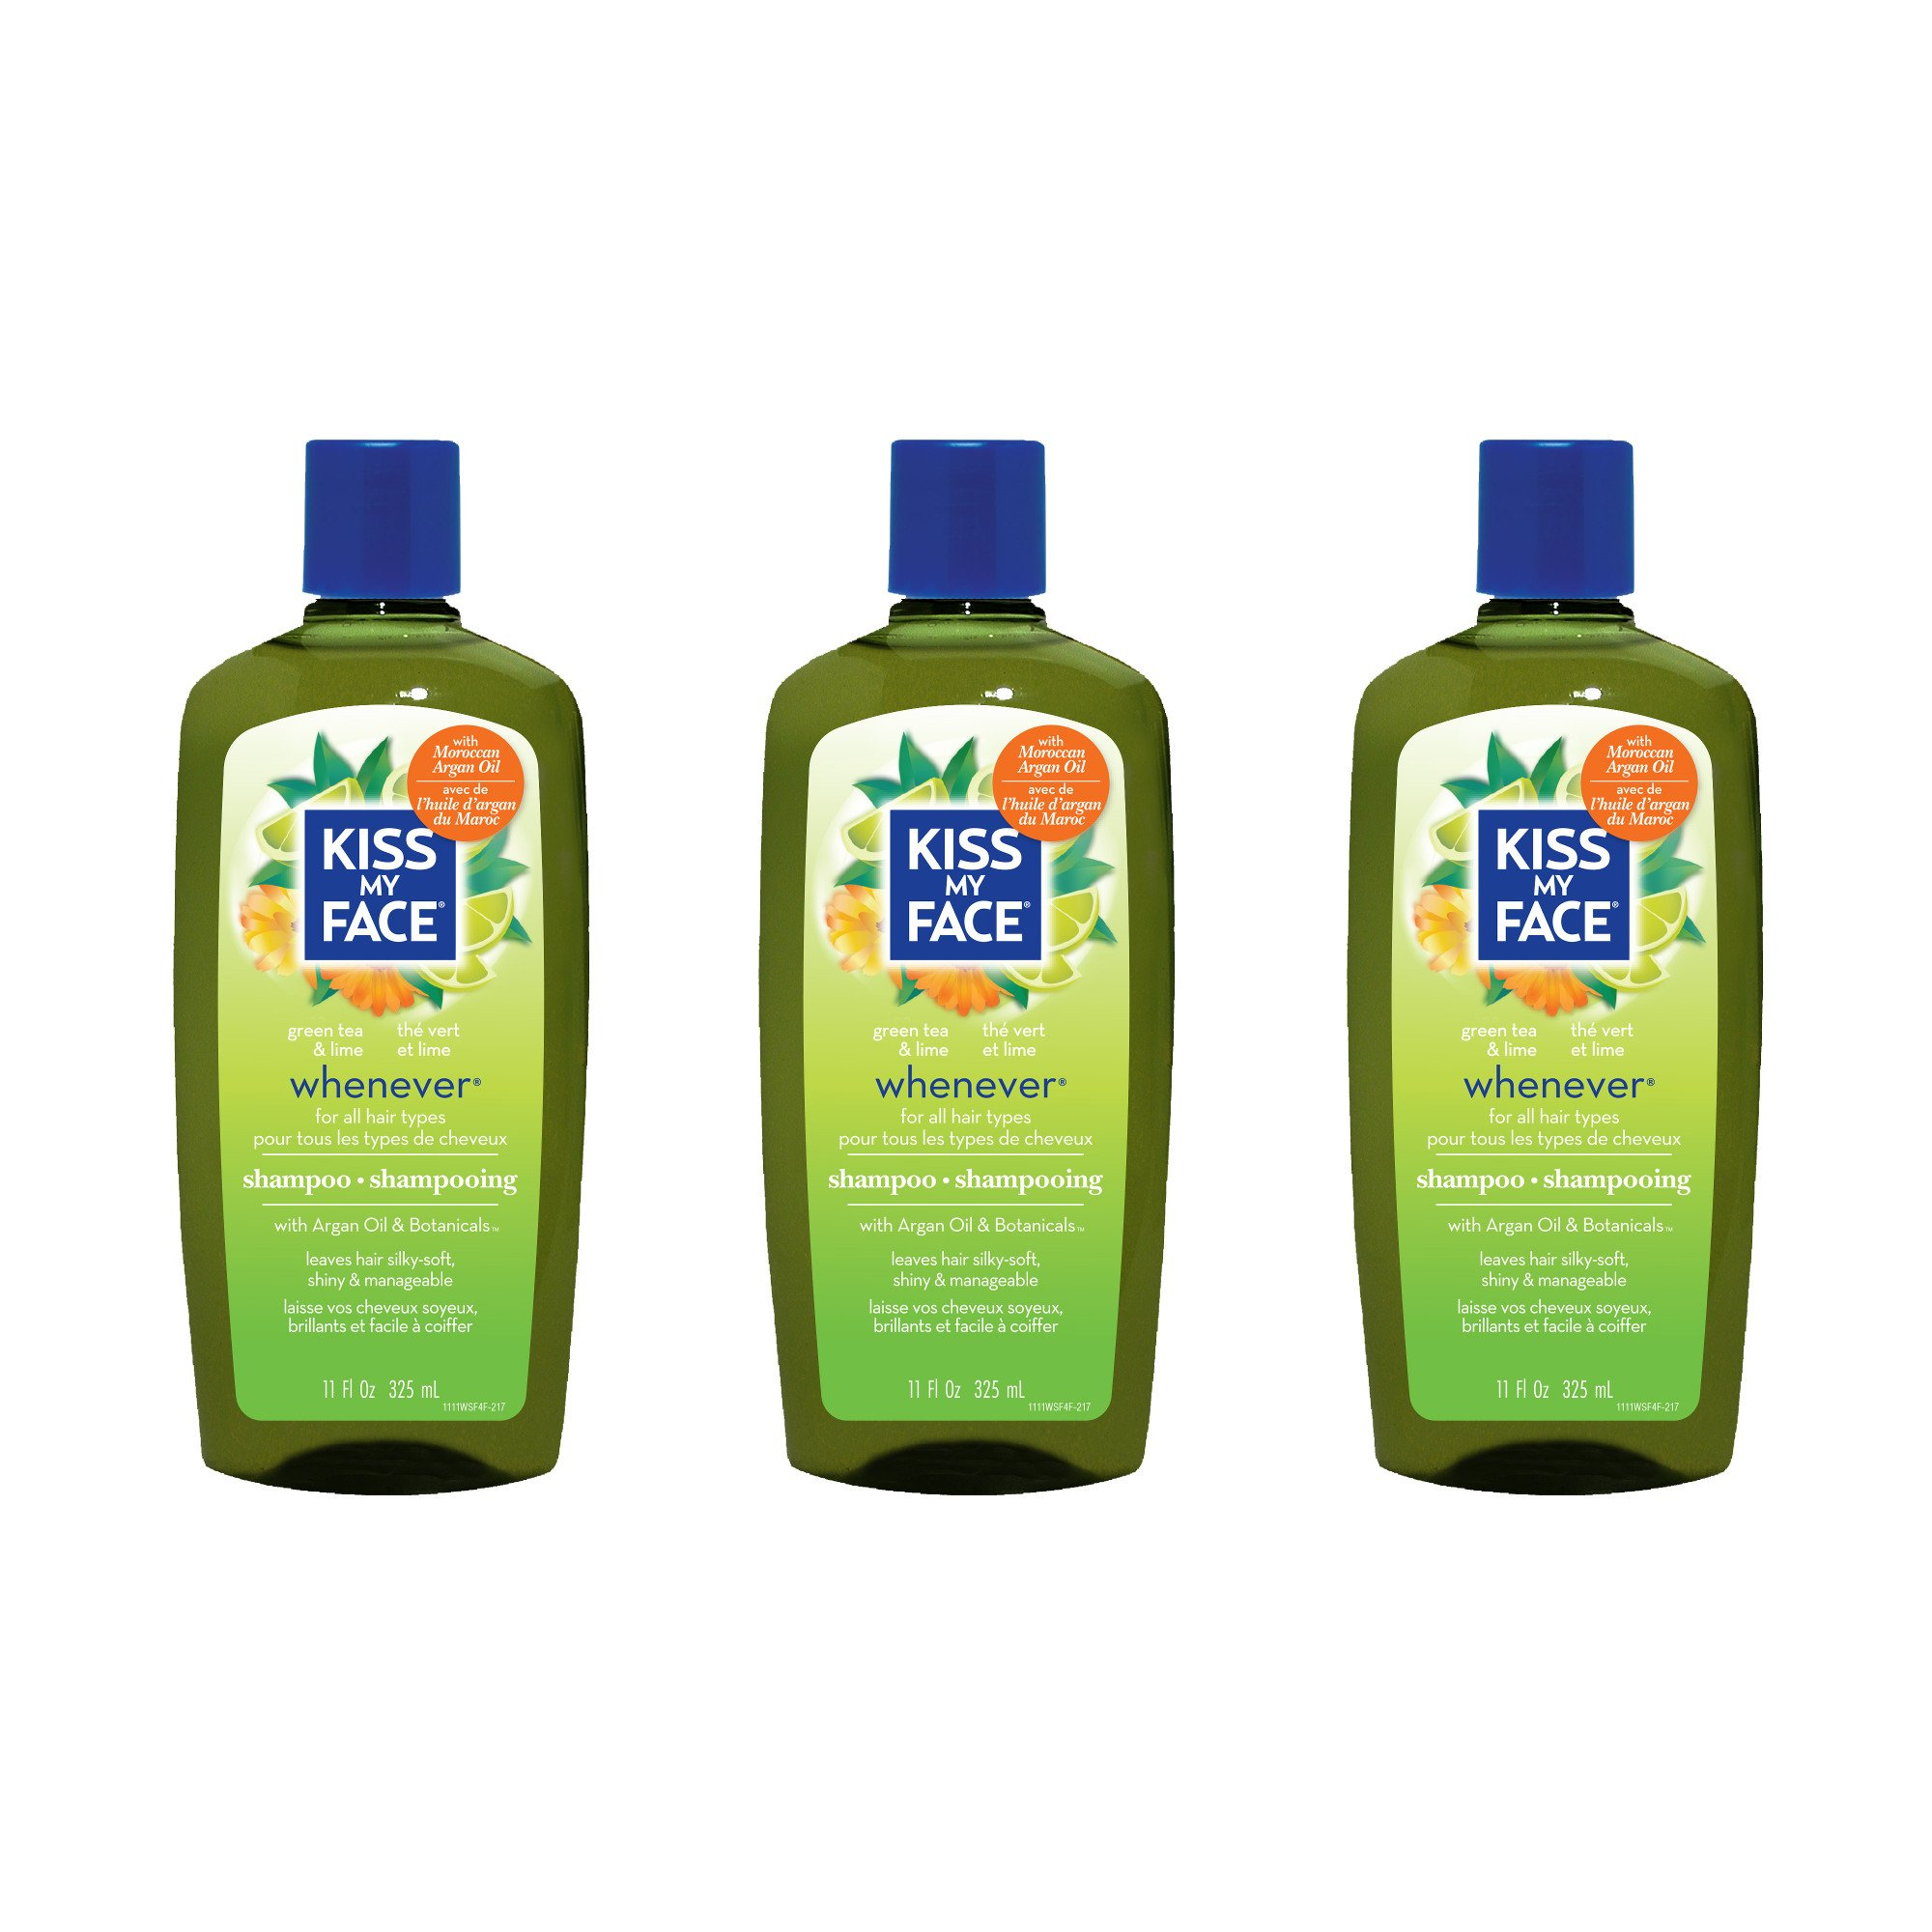 Kiss My Face Whenever Shampoo, Shampoo with Green Tea & Lime, 11 Ounce (Pack of 3) by Kiss My Face (Image #1)